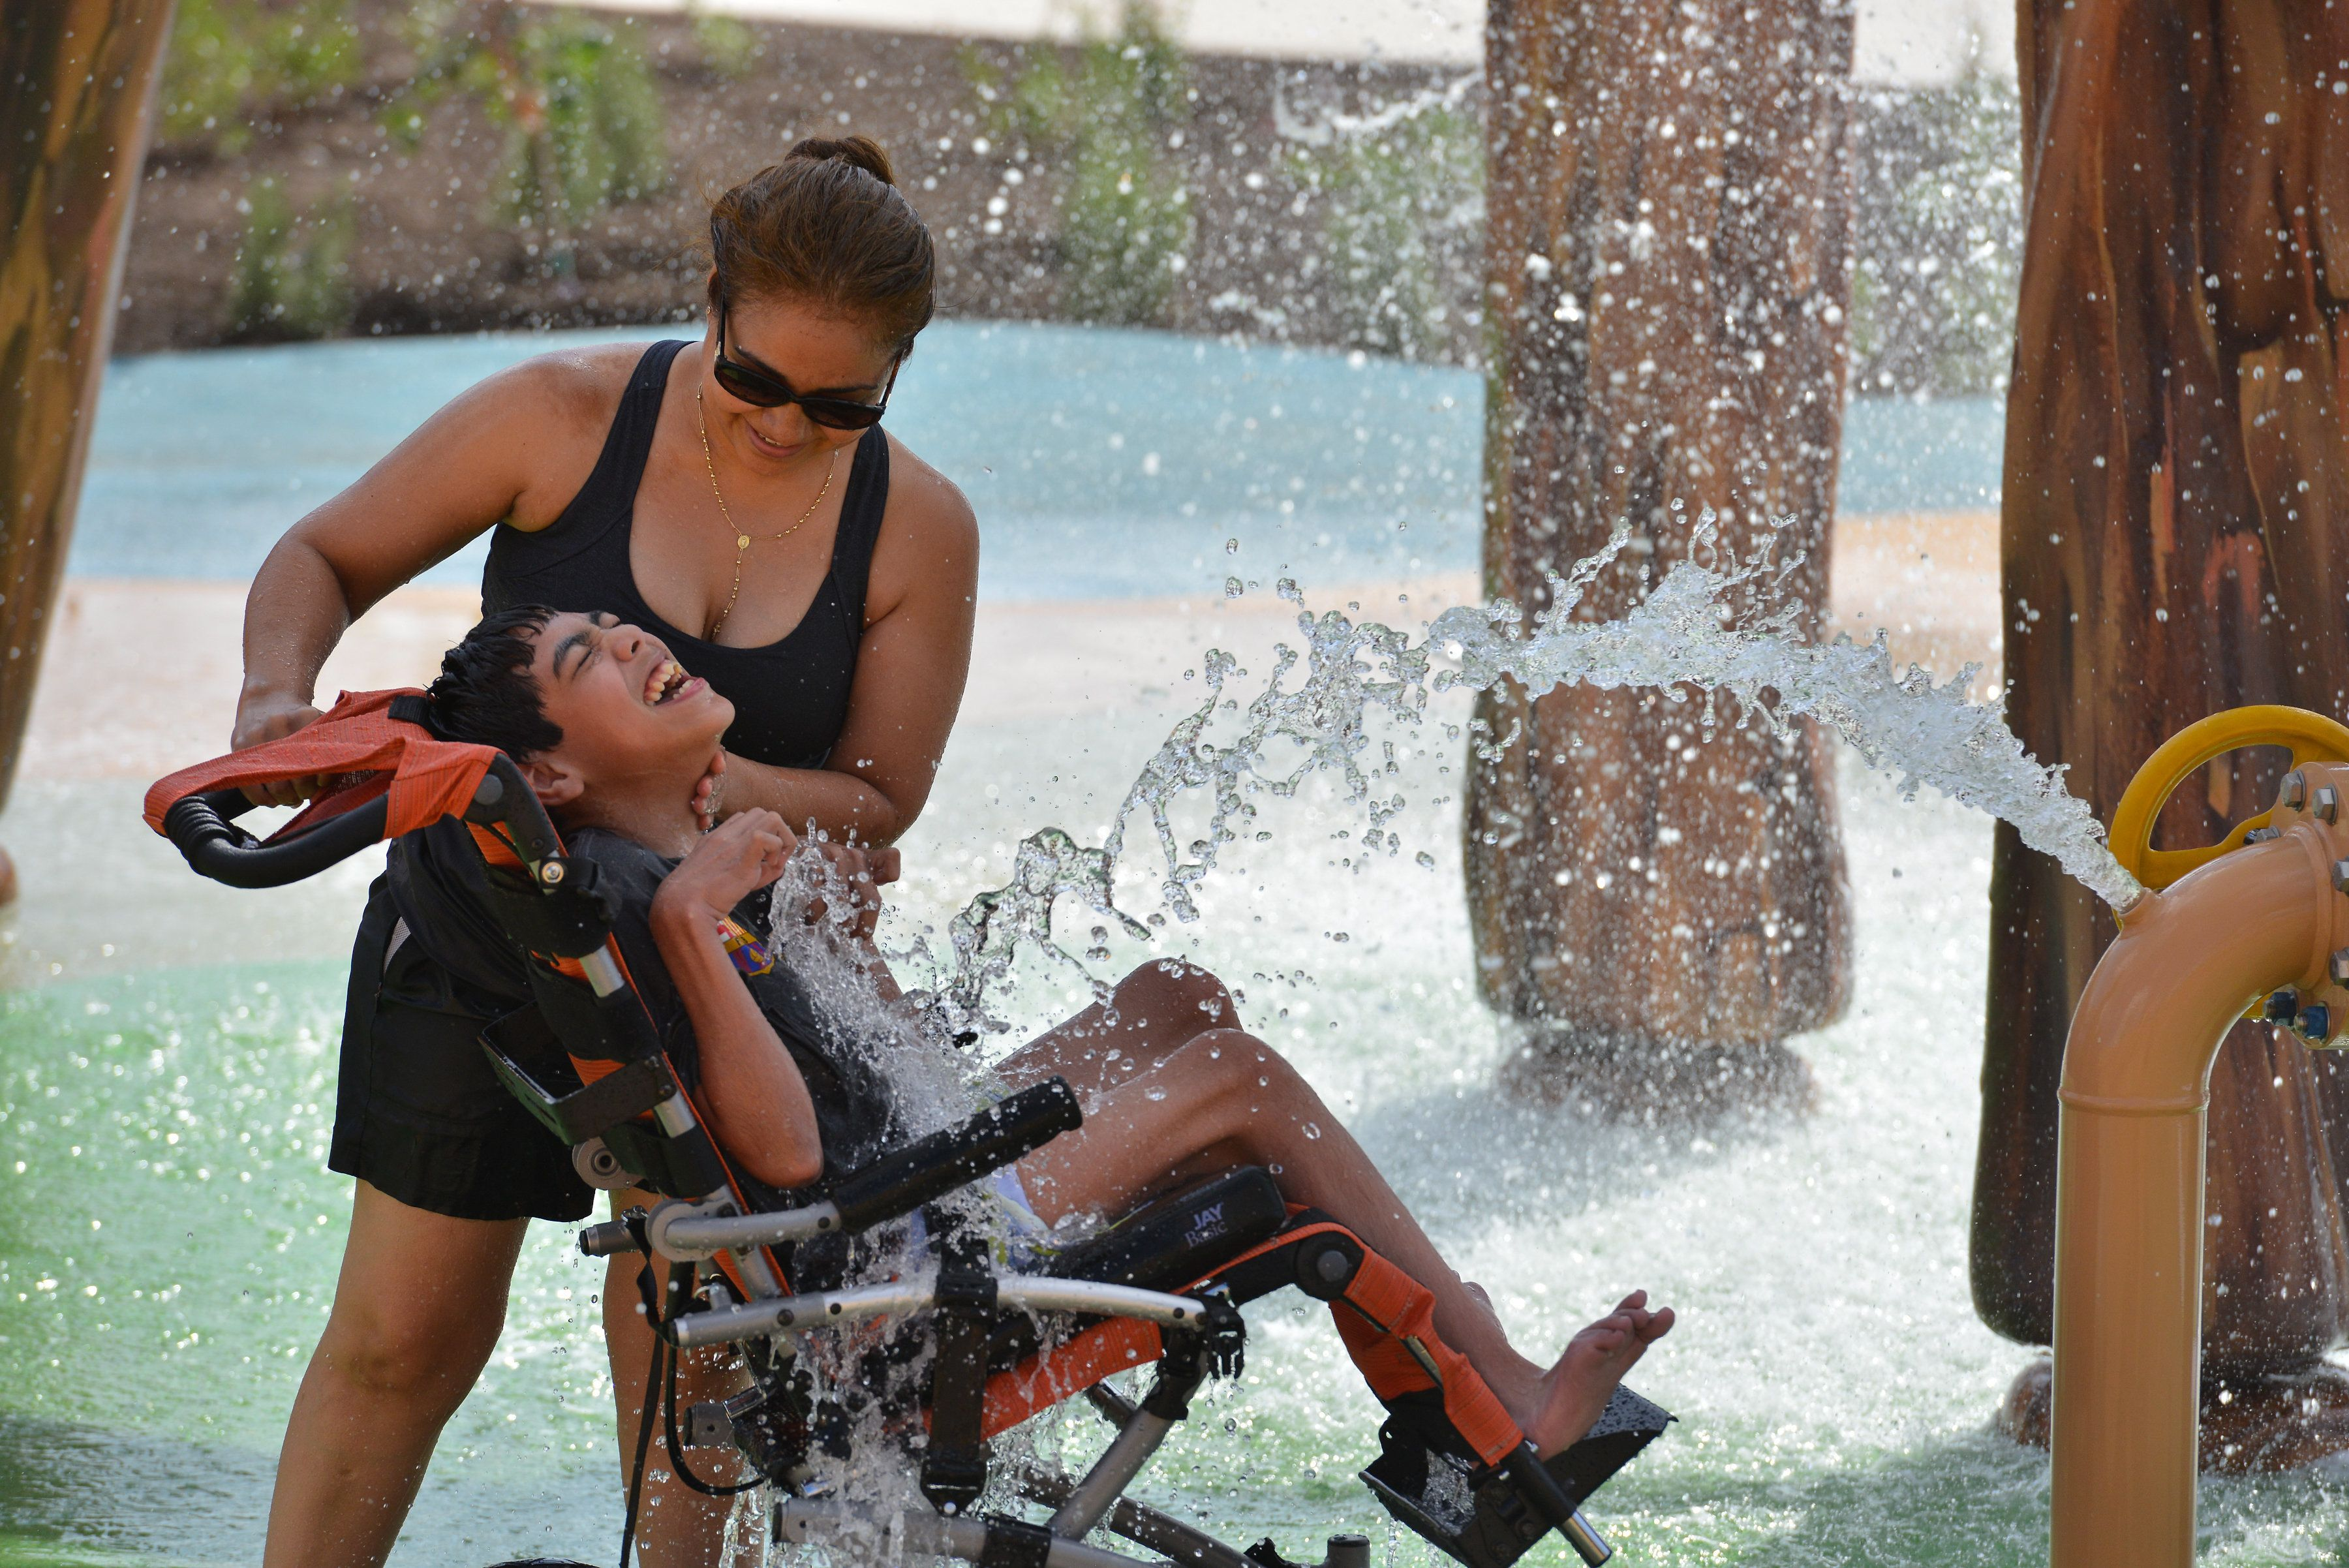 Morgan's Inspiration Island, a splash park, was designed with kids in disabilities in mind.